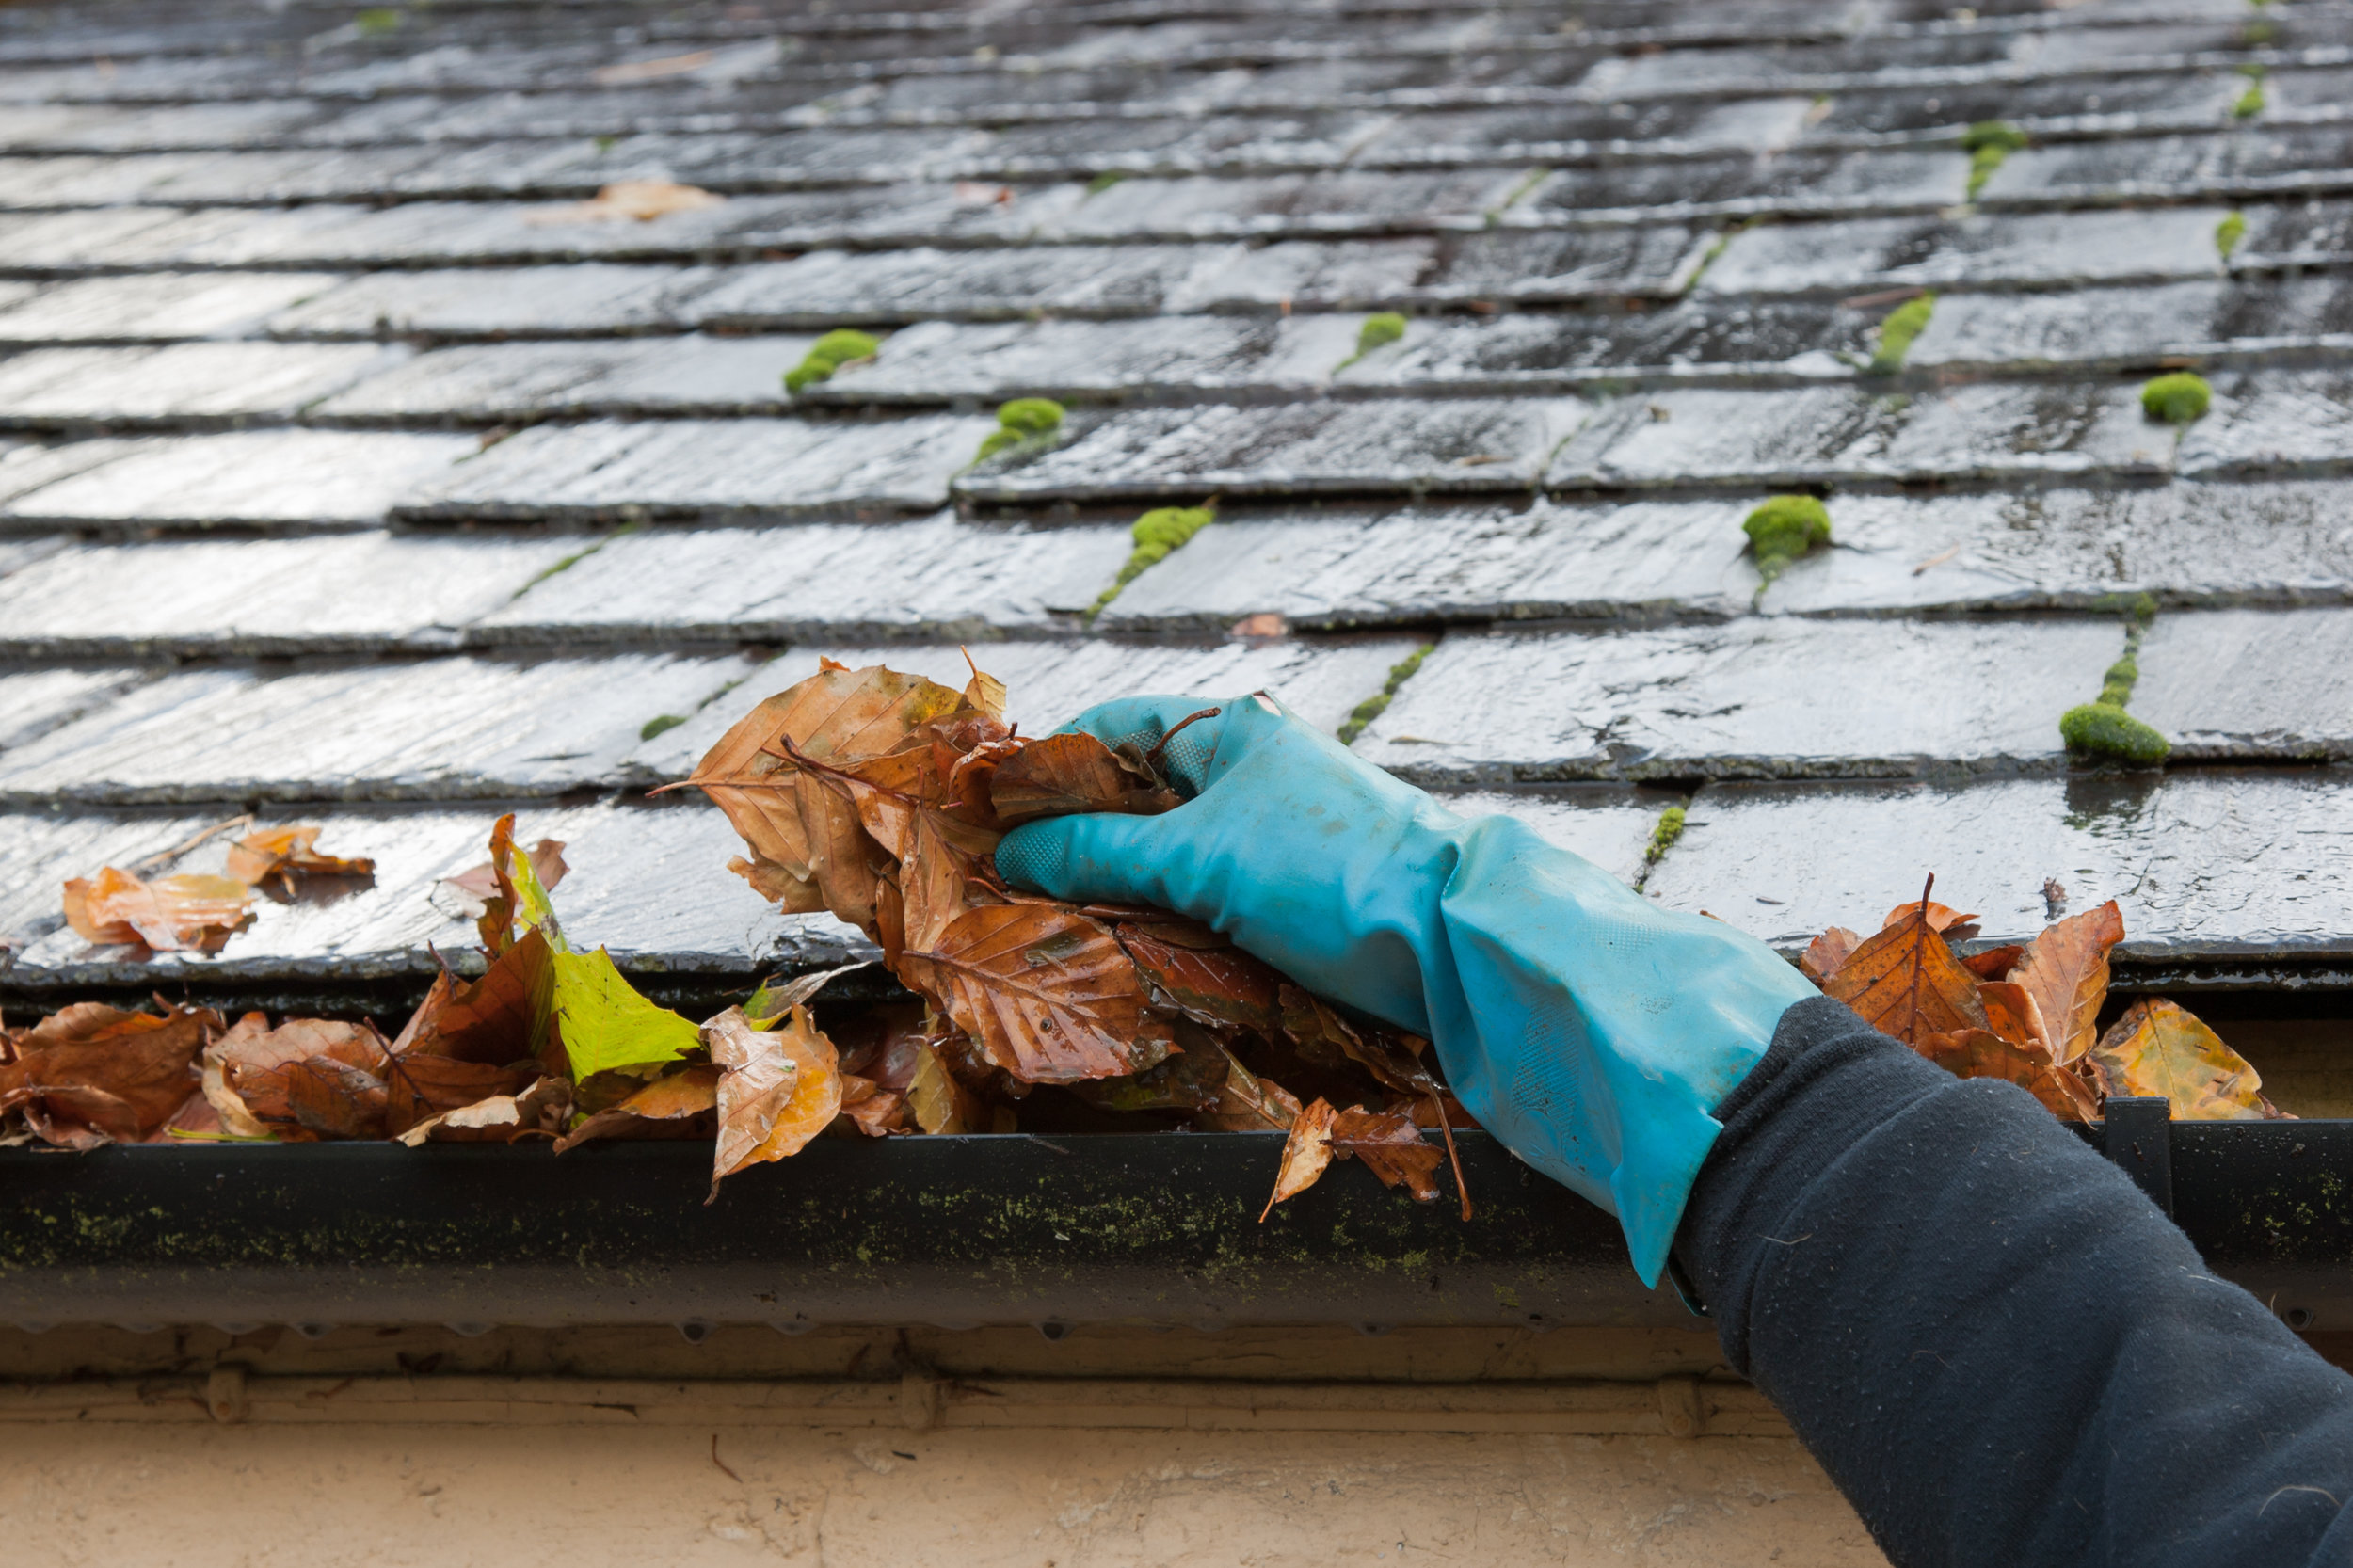 Gutter Cleaning - We have been cleaning out guttering since we started, we do so efficiently and with minimal mess. We remove all debris, wash out guttering and then clean exterior guttering as part of the service.Part of our cleaning process includes our new GutterSucker™ vacuum that helps get everything out of your gutters, up to 3 storeys, especially in hard to reach places.